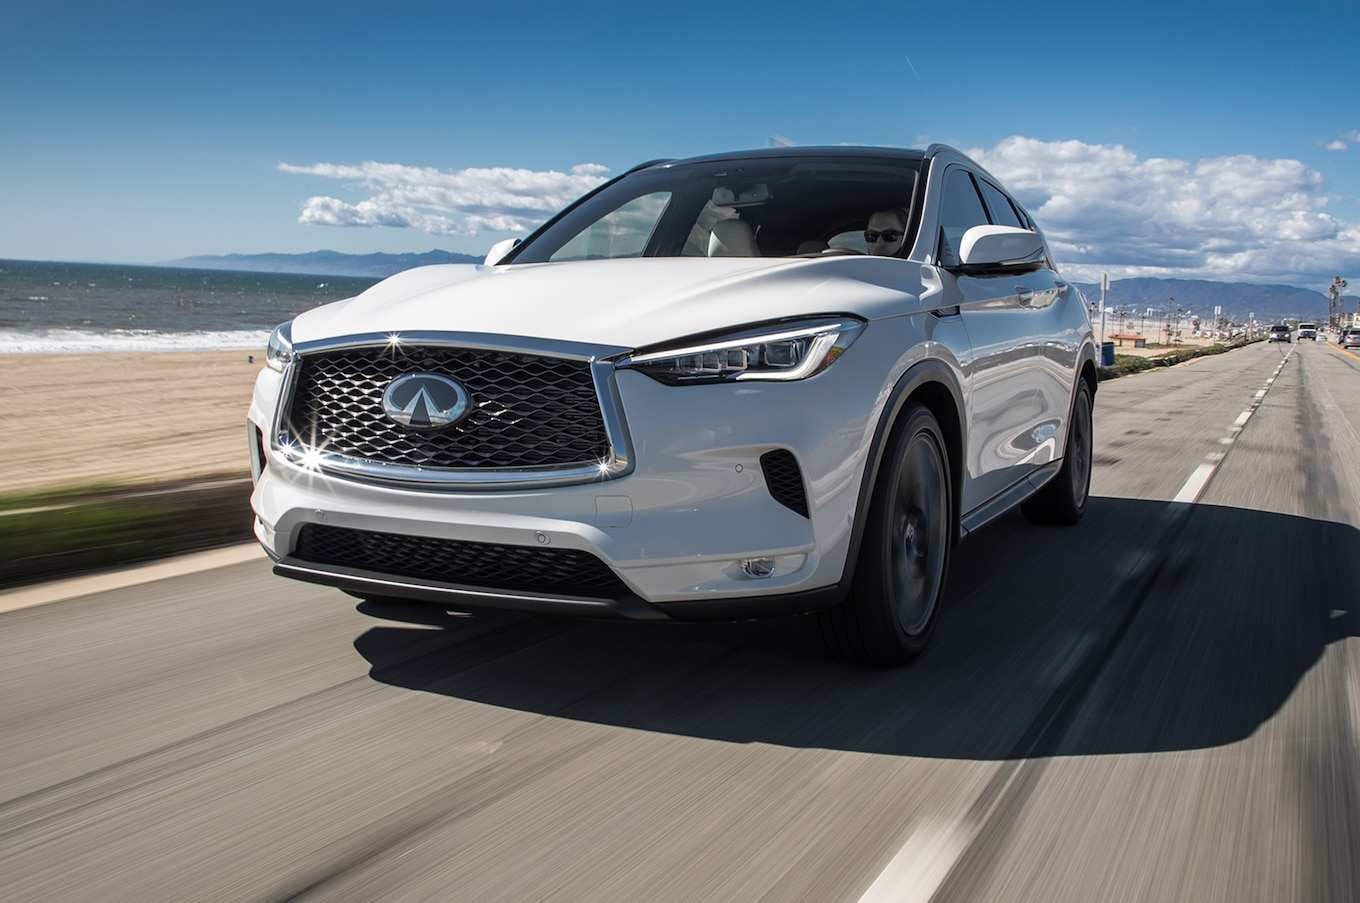 15 Great 2019 Infiniti Fx50 Images for 2019 Infiniti Fx50